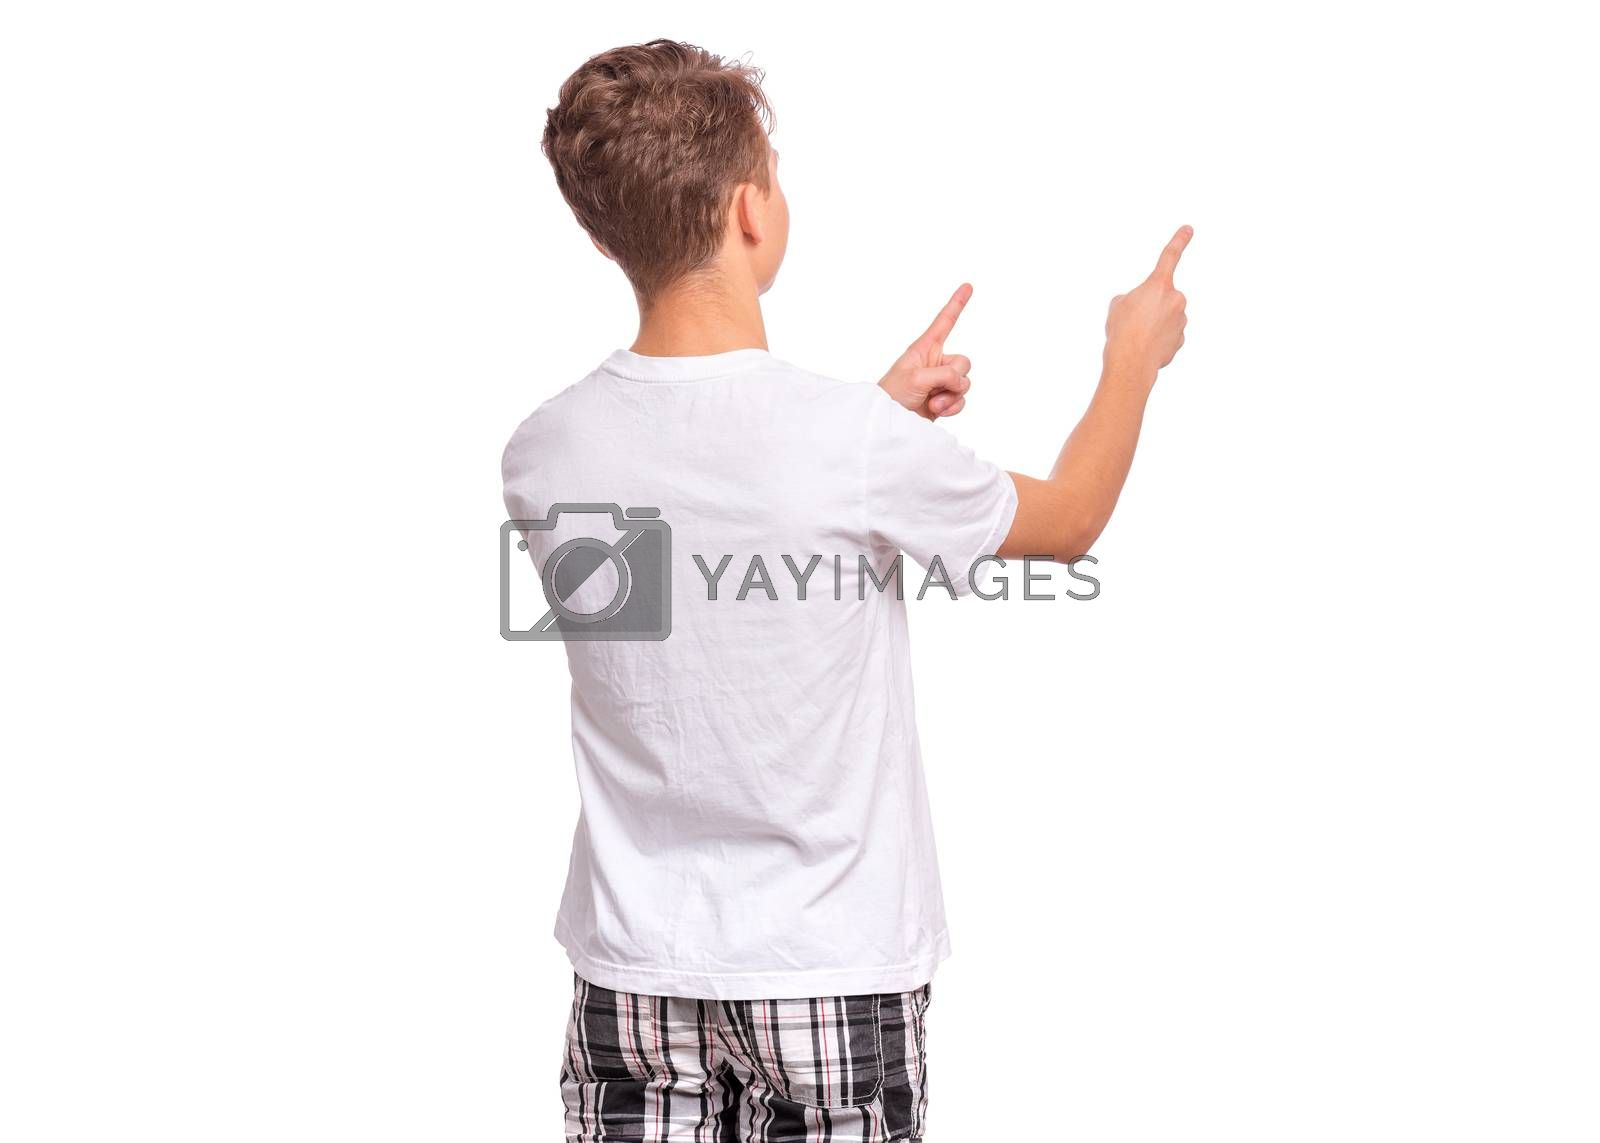 Back view. Teen boy pointing finger away at copyspace, isolated on white background. Teenager pointing fingers at something - rear view. Child in white t-shirt.